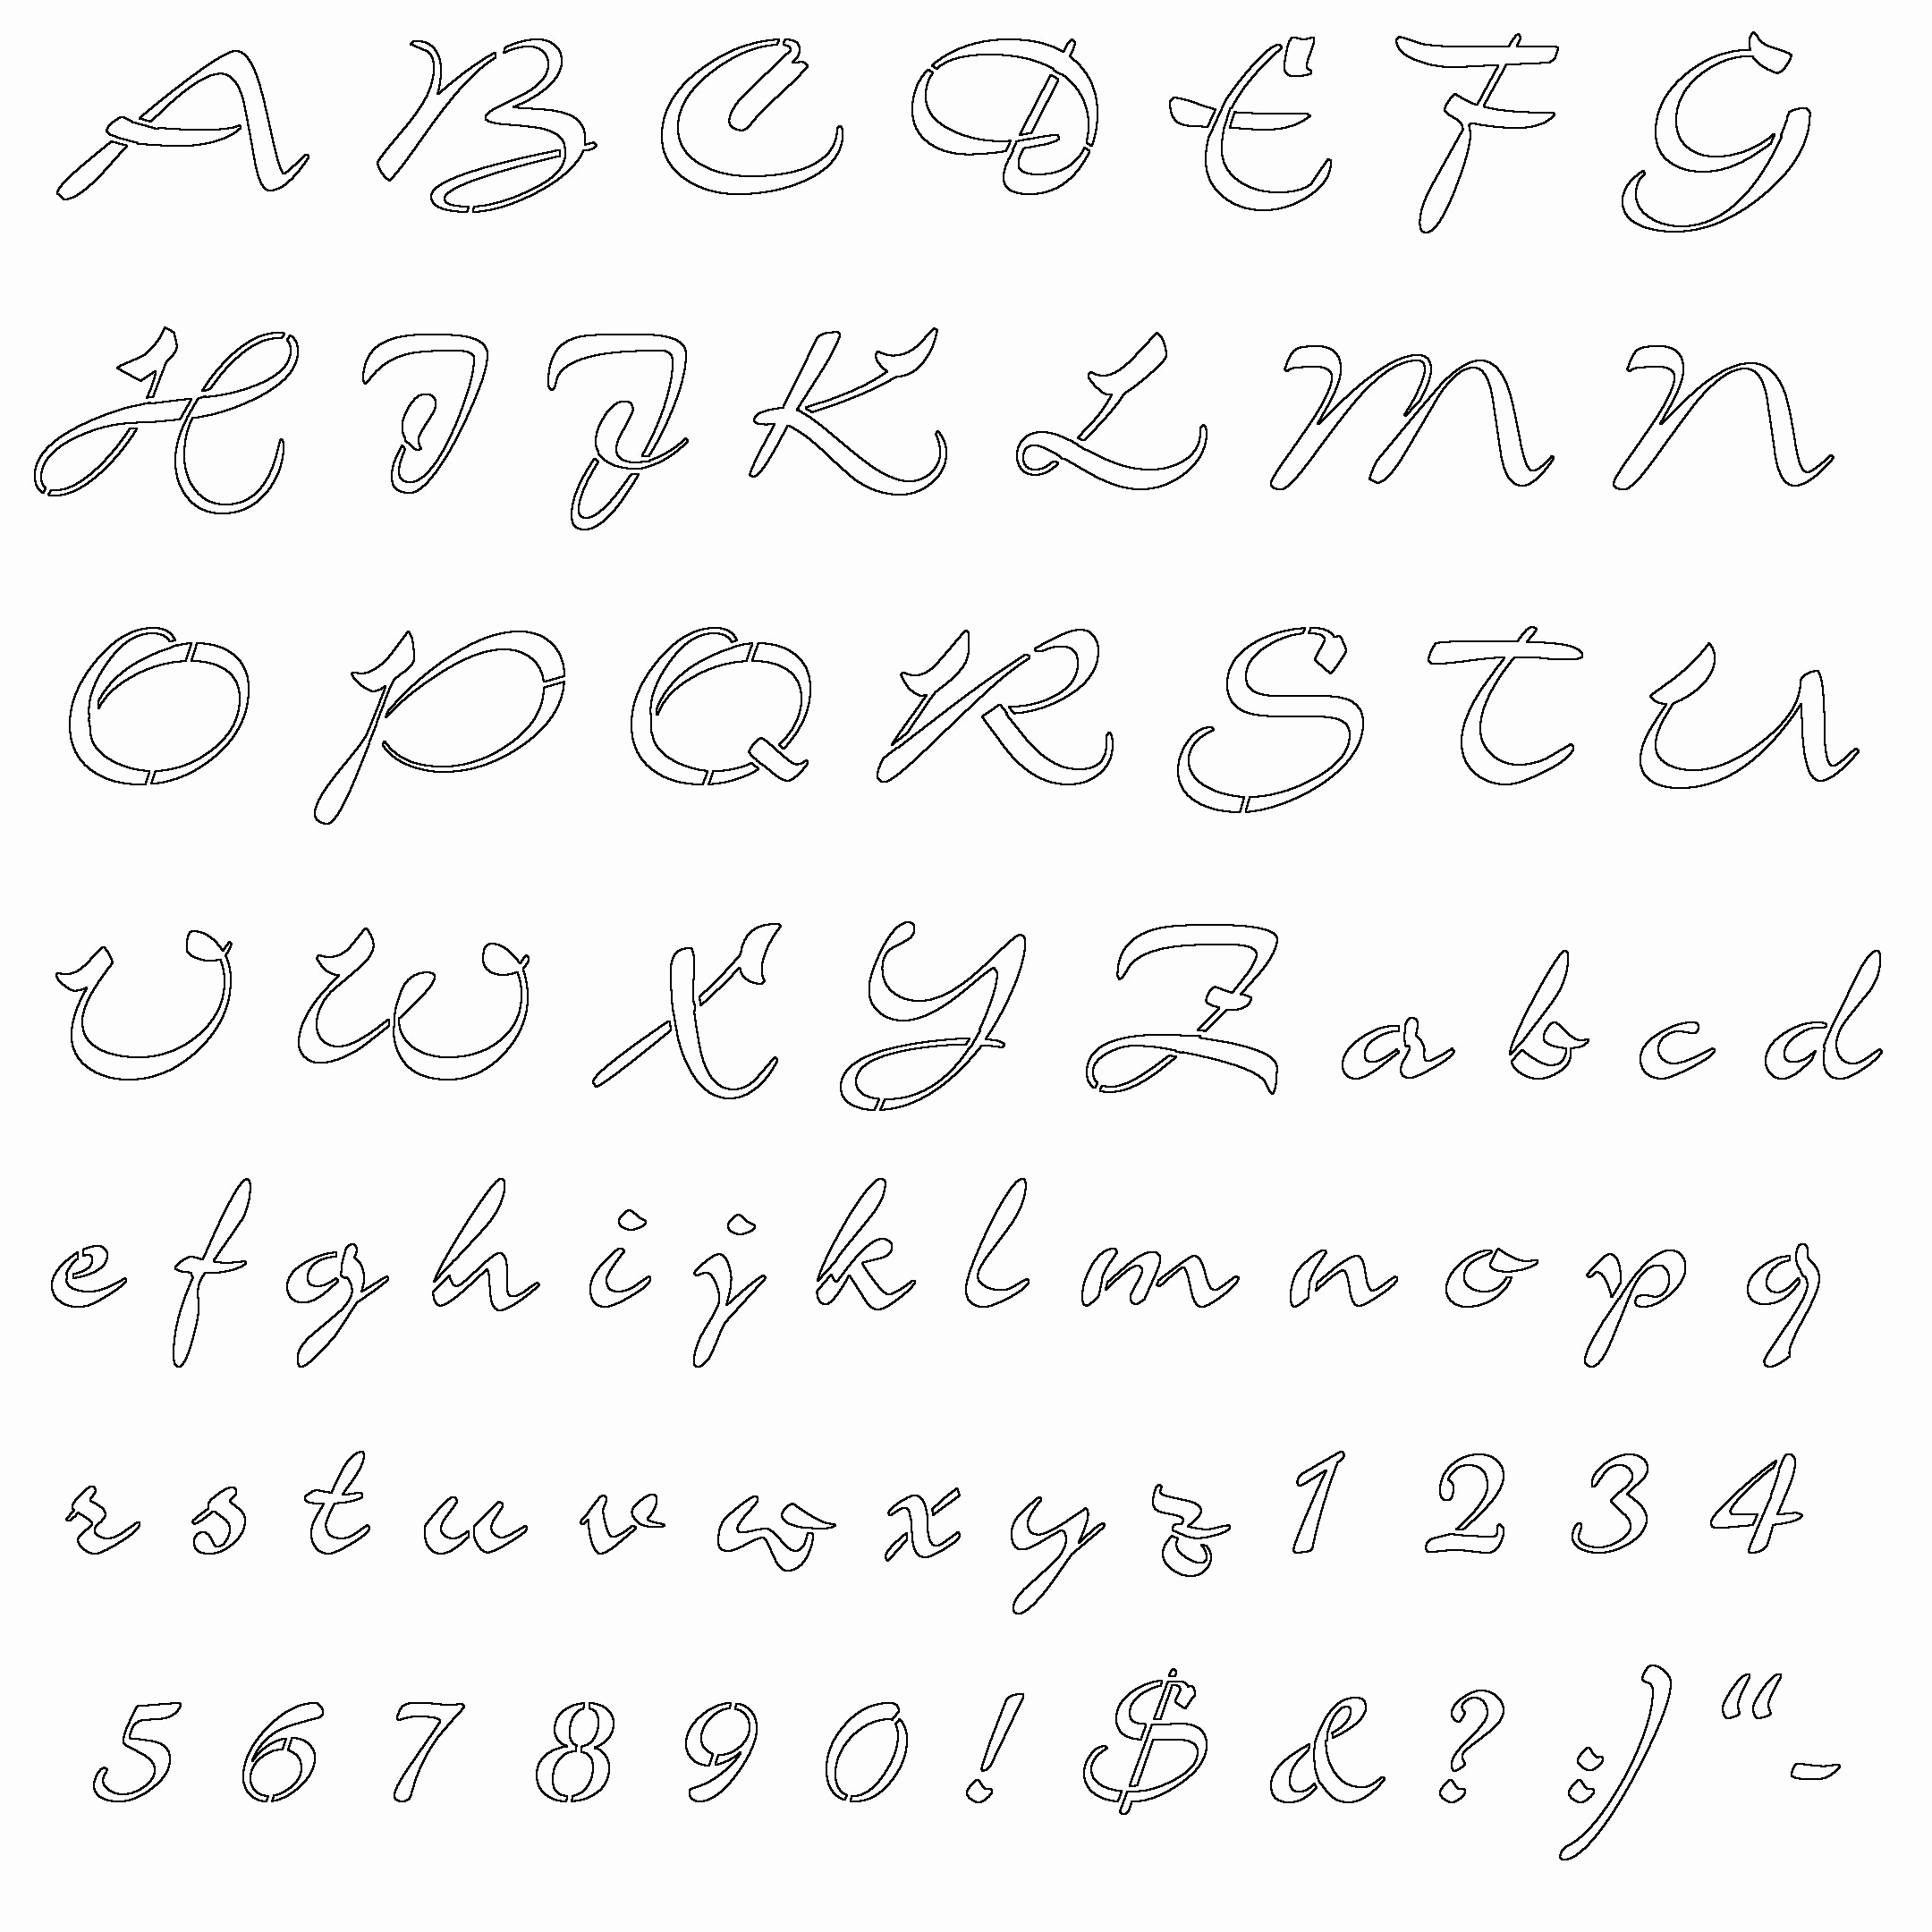 Letters Stencils to Print Lovely Fancy Letters Stencils Graffiti Drawing